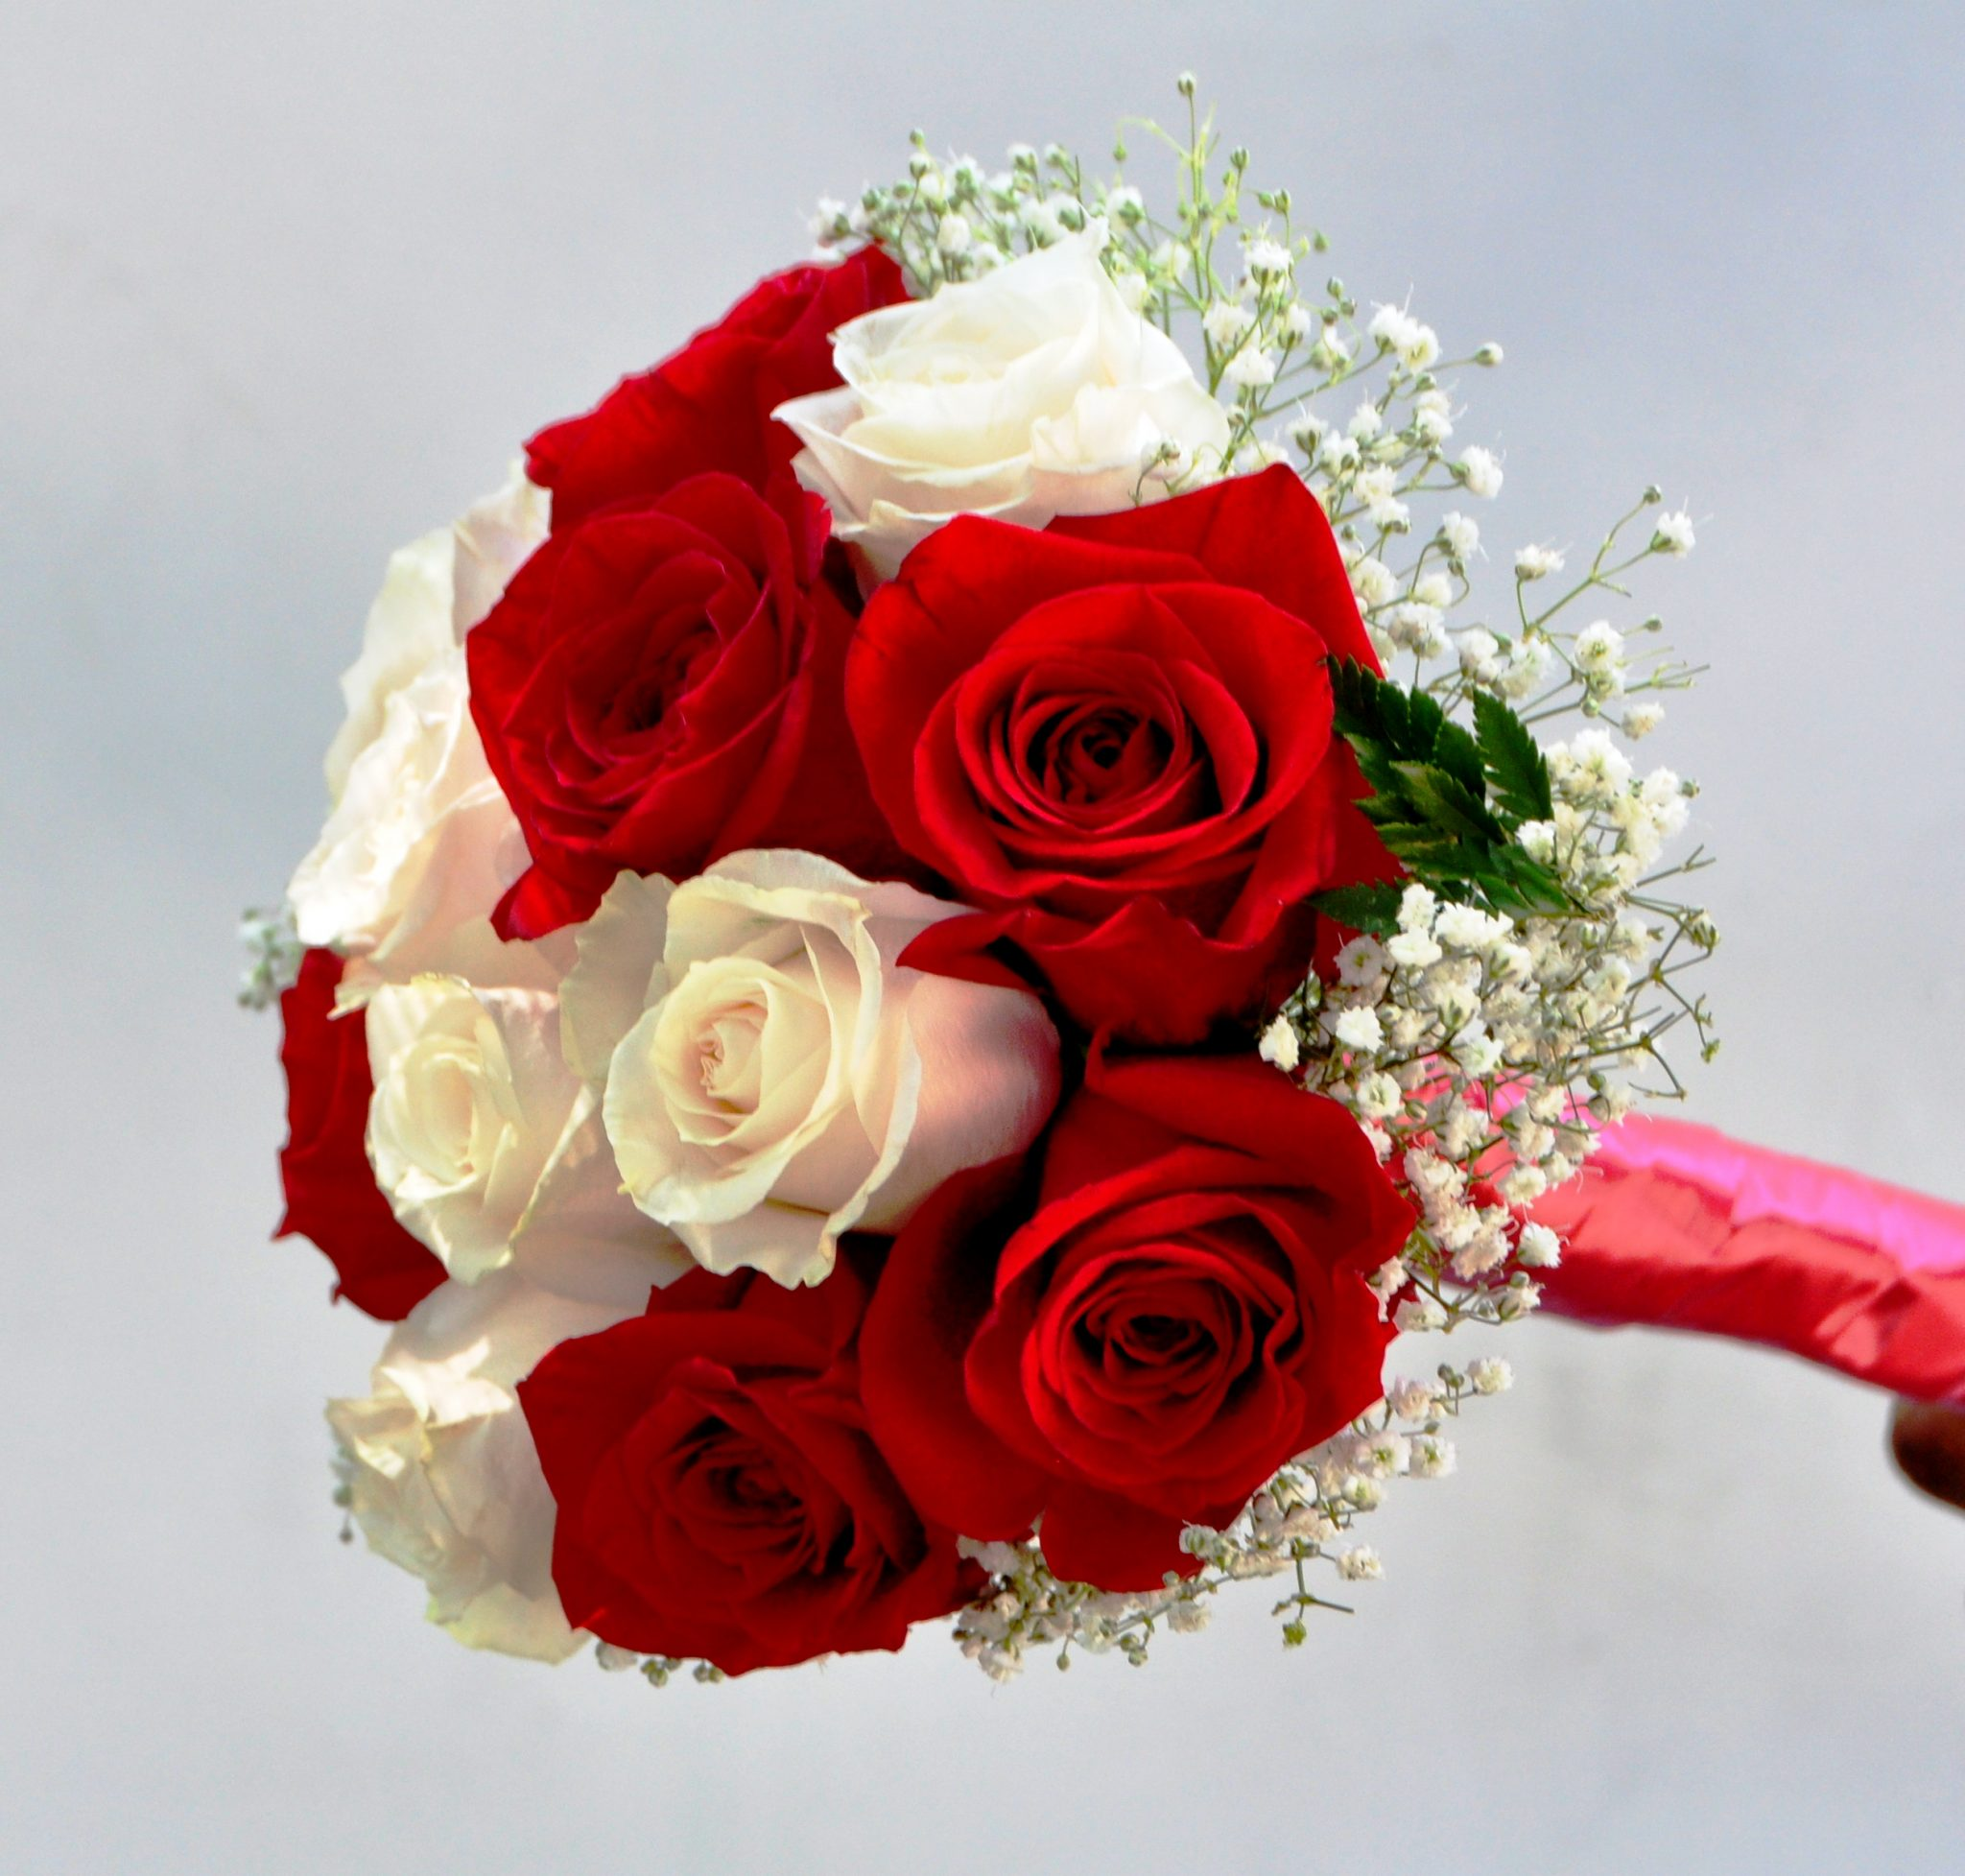 Wedding White Roses: Bride Or Bridesmaid Bouquet 12 Red & White Roses